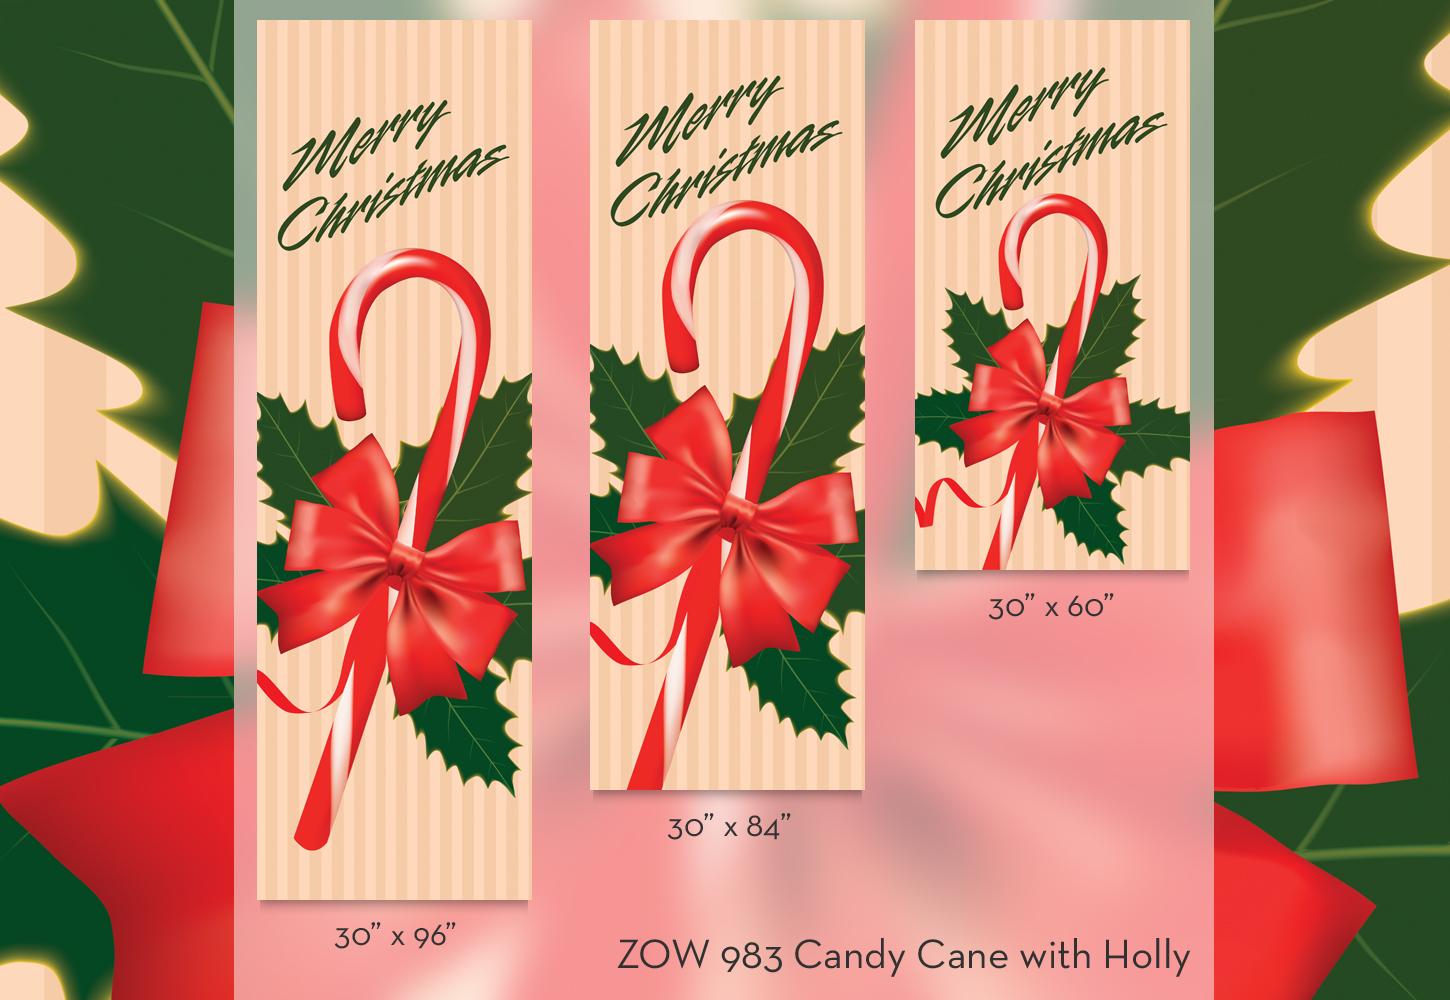 ZOW 983 Candy Cane with Holly